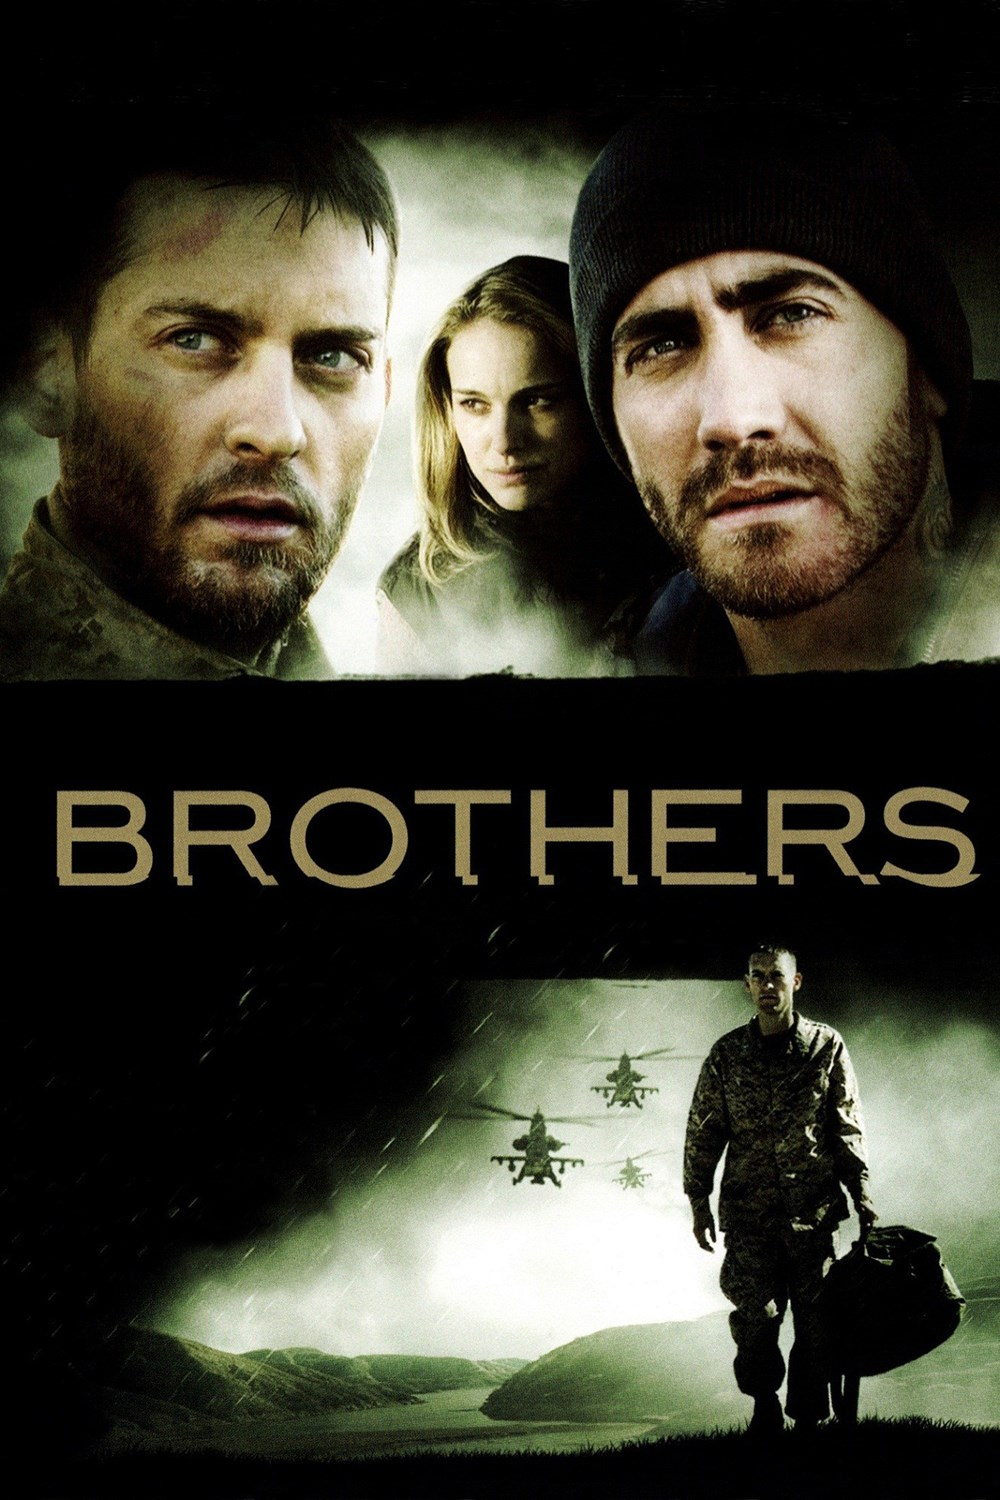 Brothers (2009) yify download movie torrent yts.